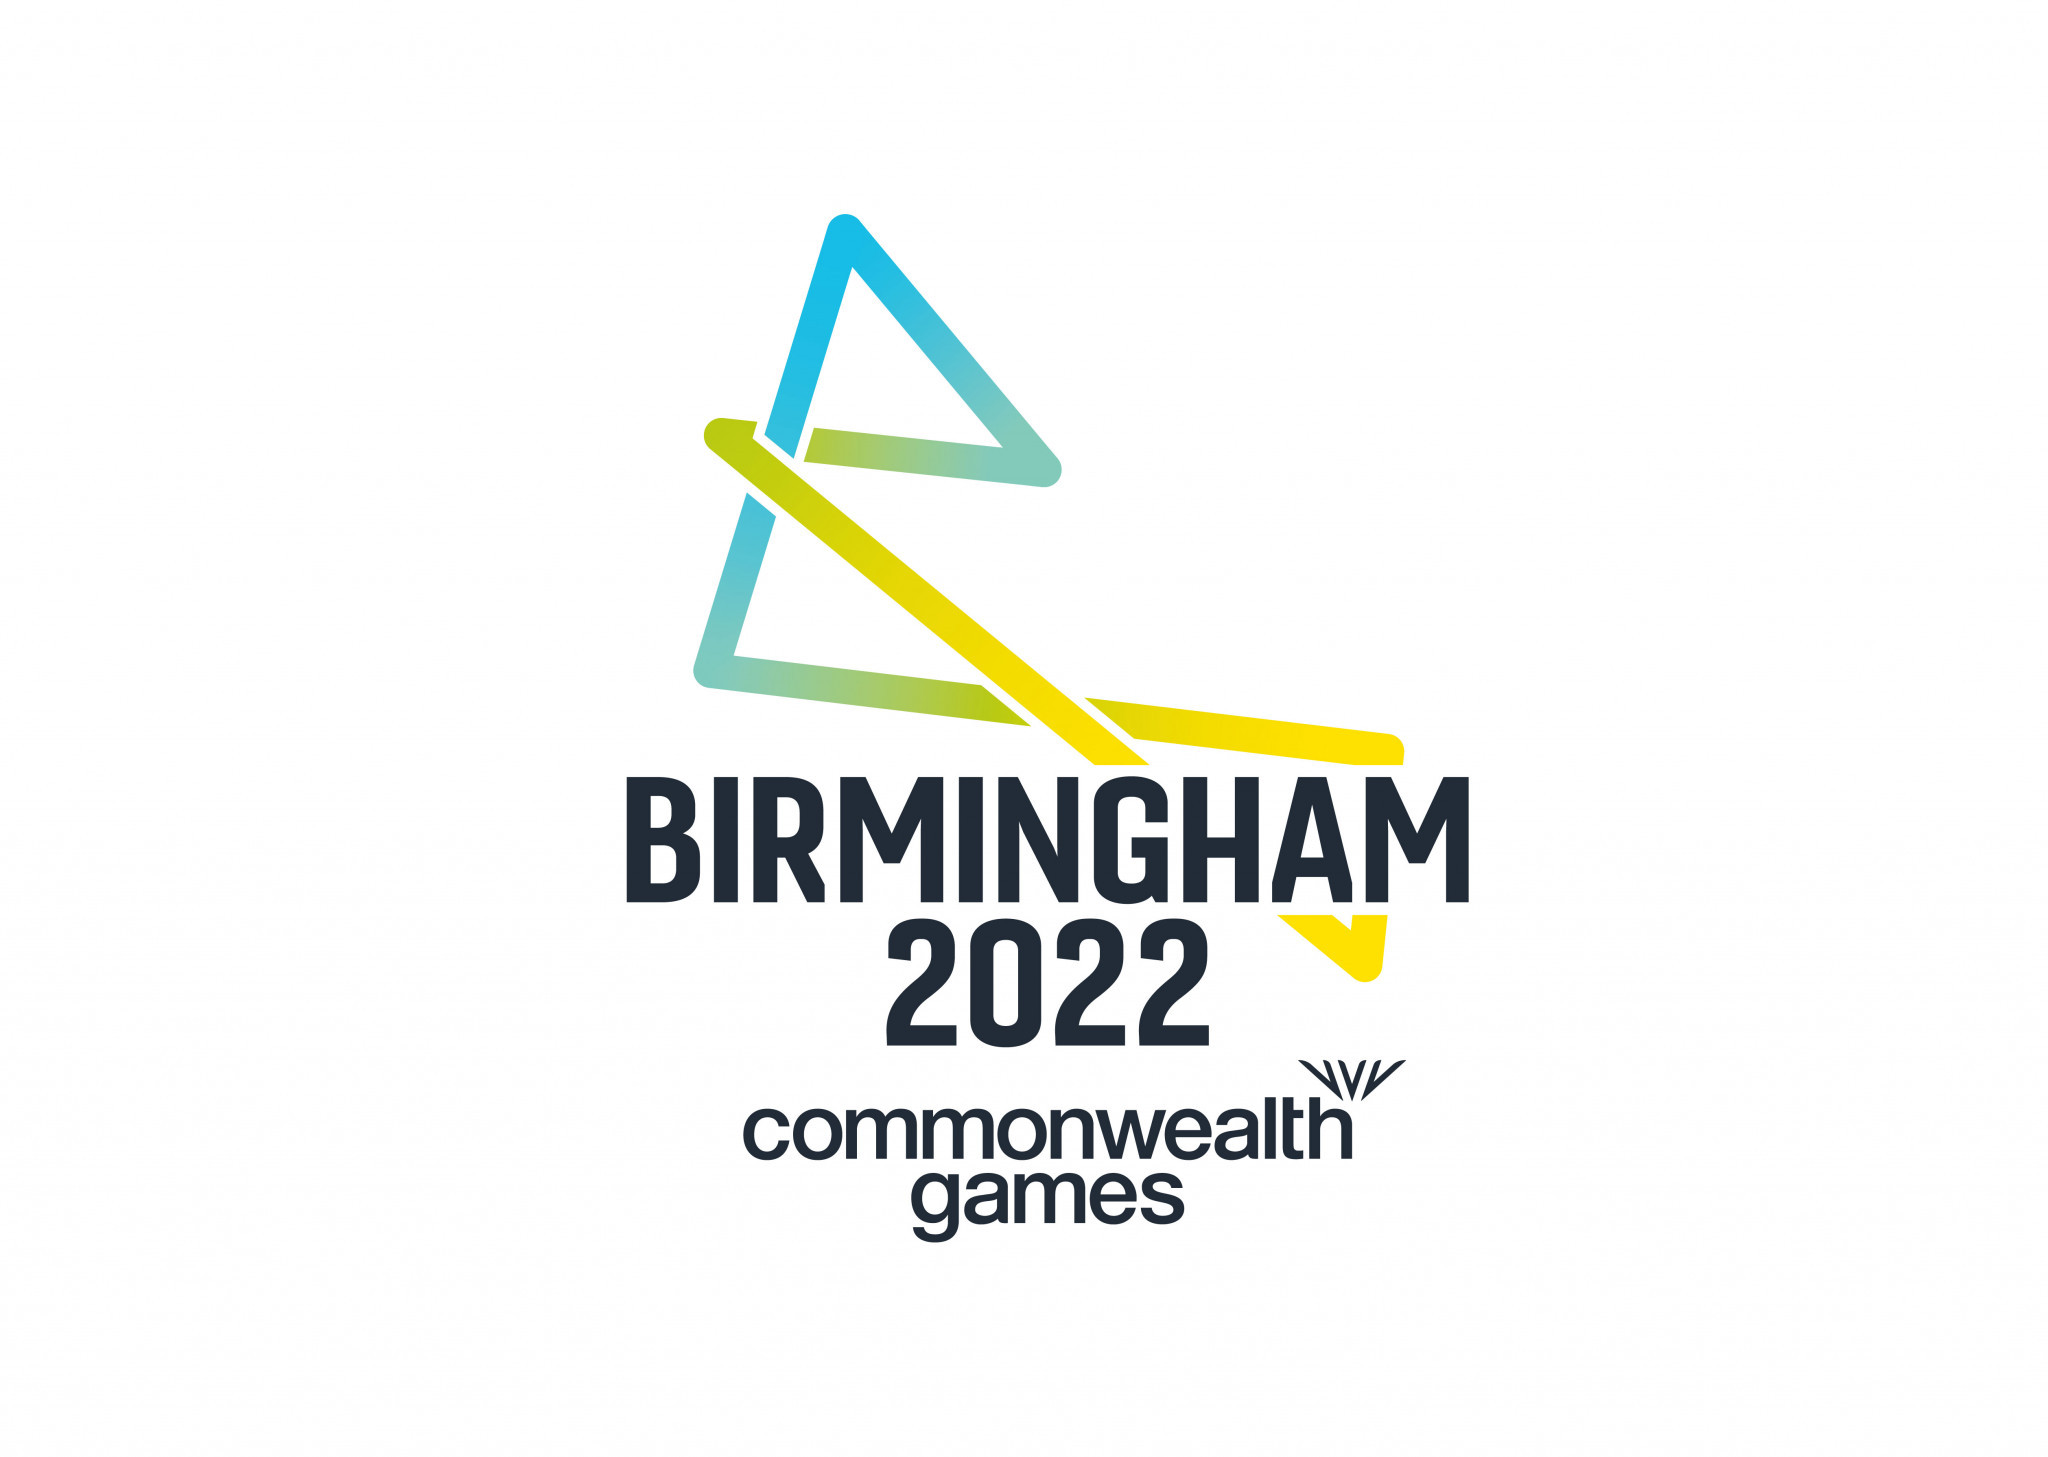 Birmingham 2022 launch logo with three years until start of Commonwealth Games